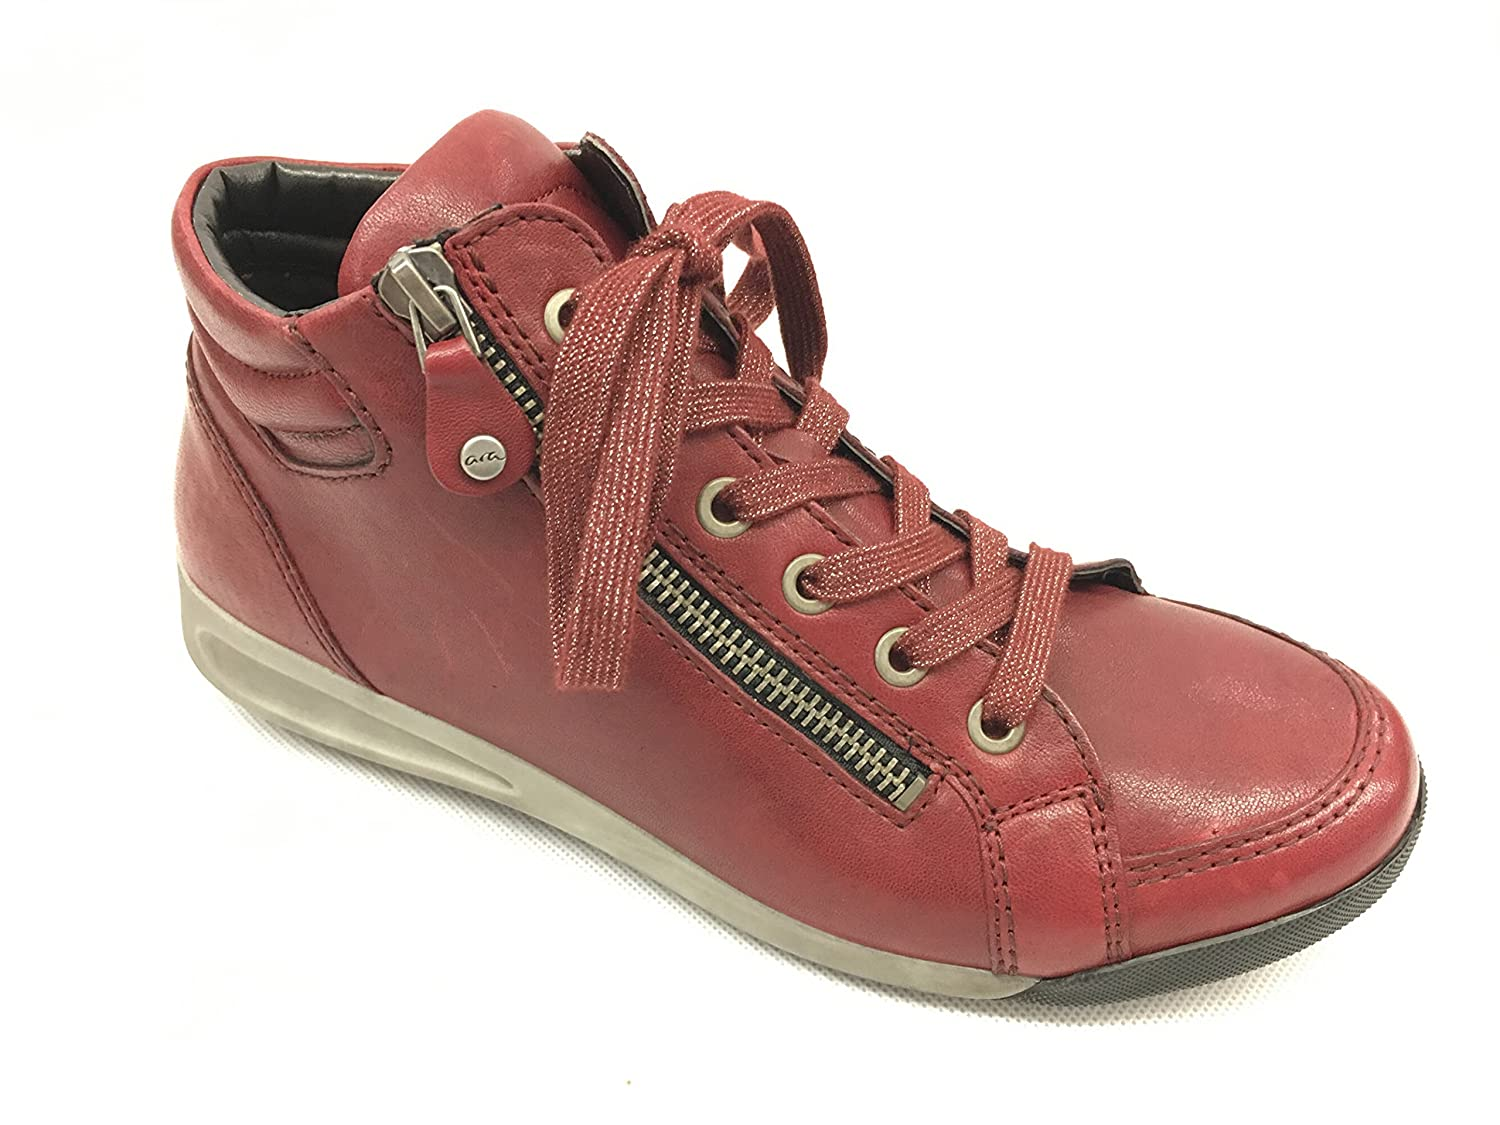 Ara Damen Bordo Rom-STF 12-44410 Hohe Sneakers Bordo Damen 67a068